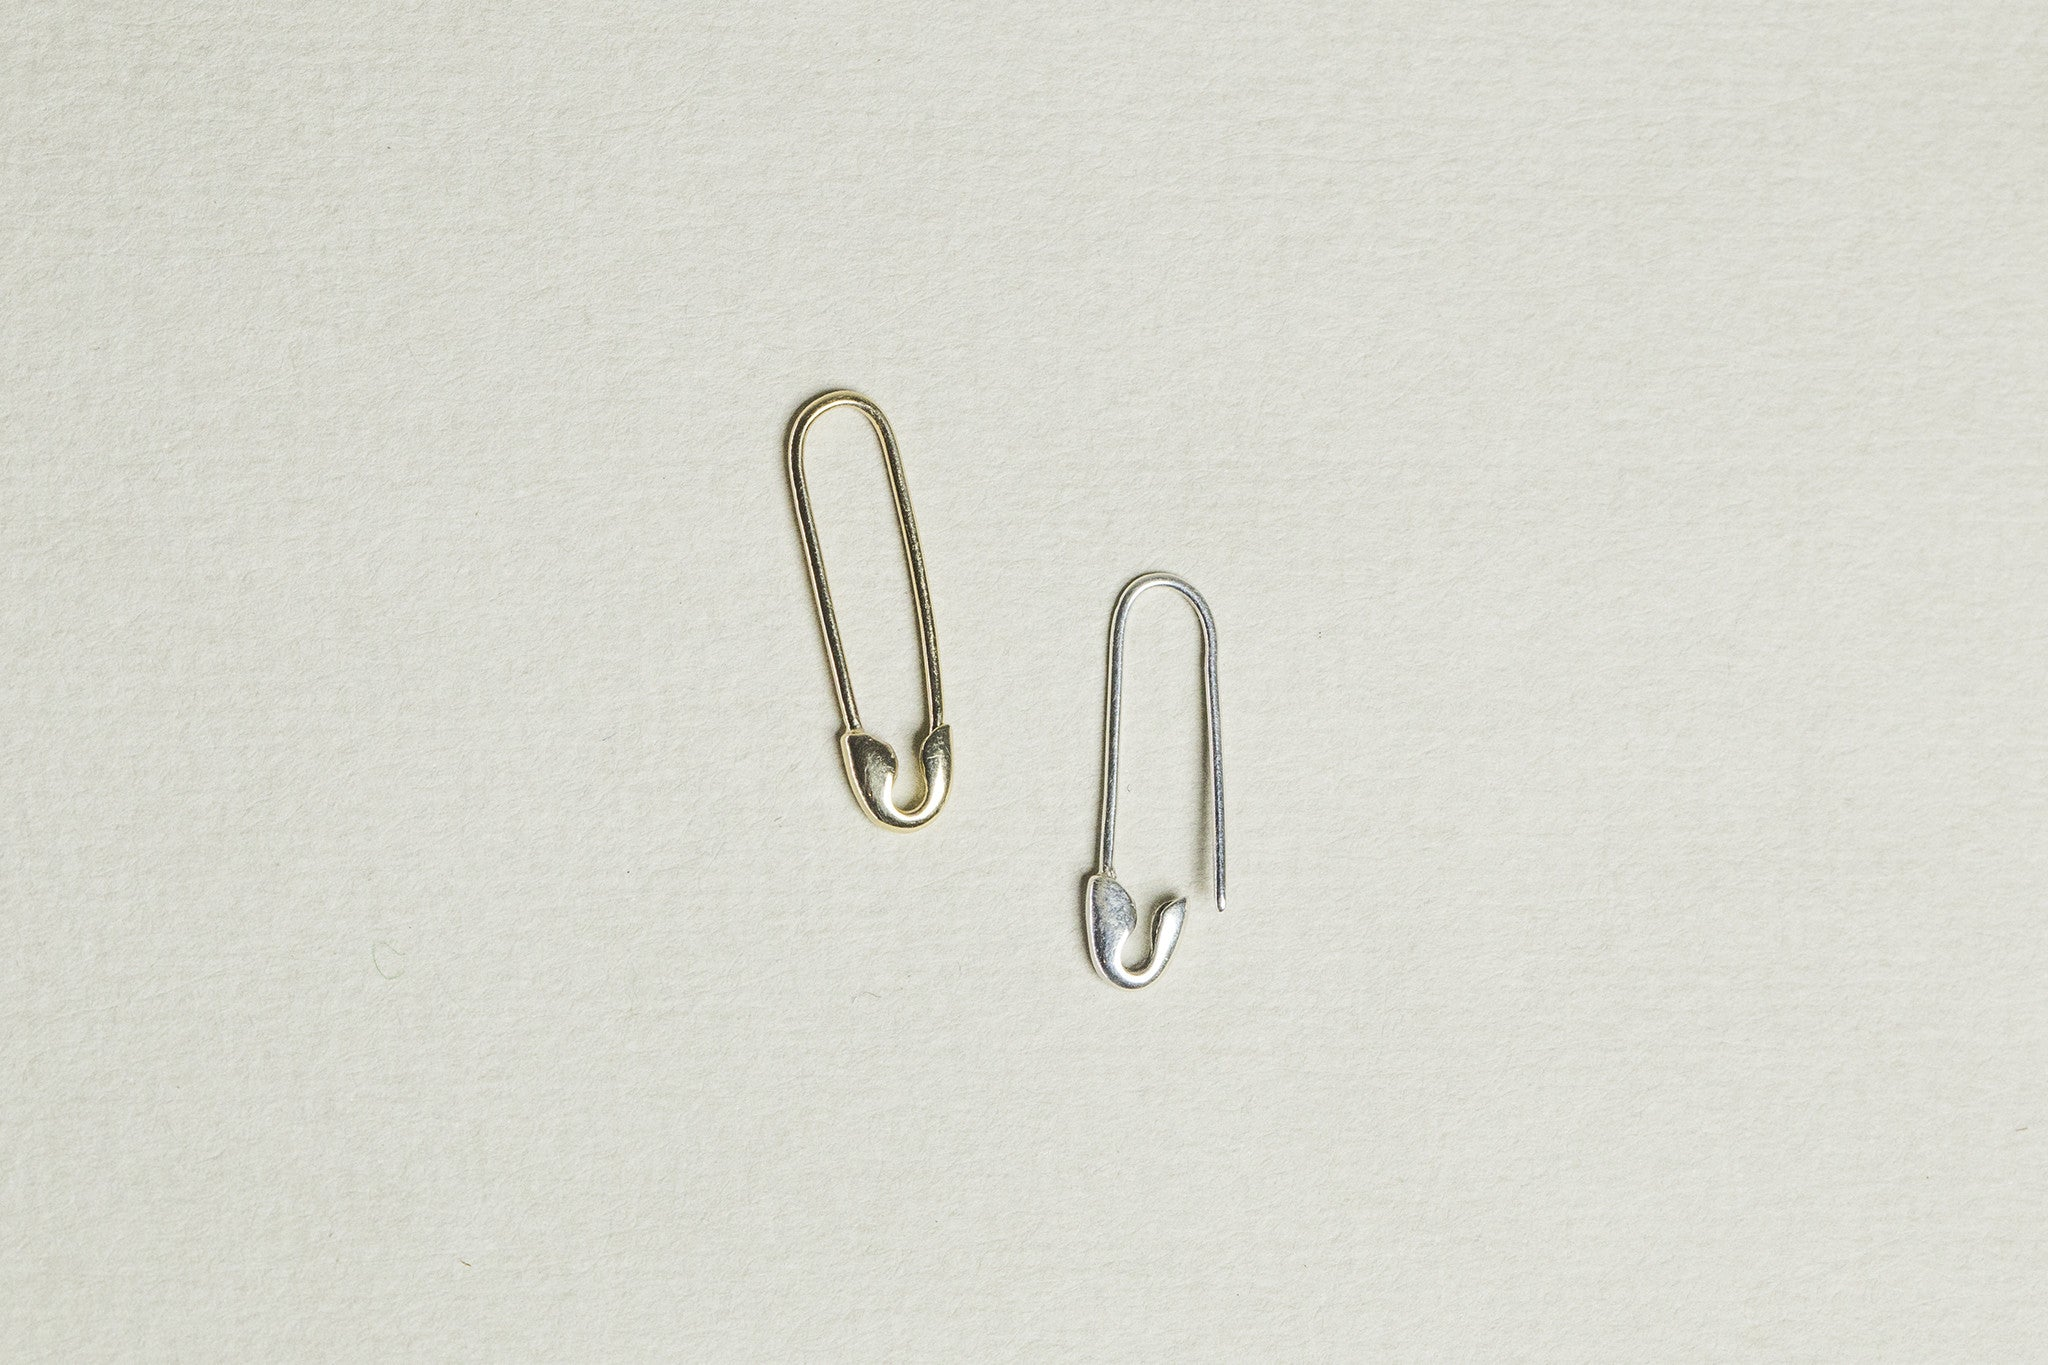 also available is a plain version - either 9 carat gold or sterling silver, sold in pairs